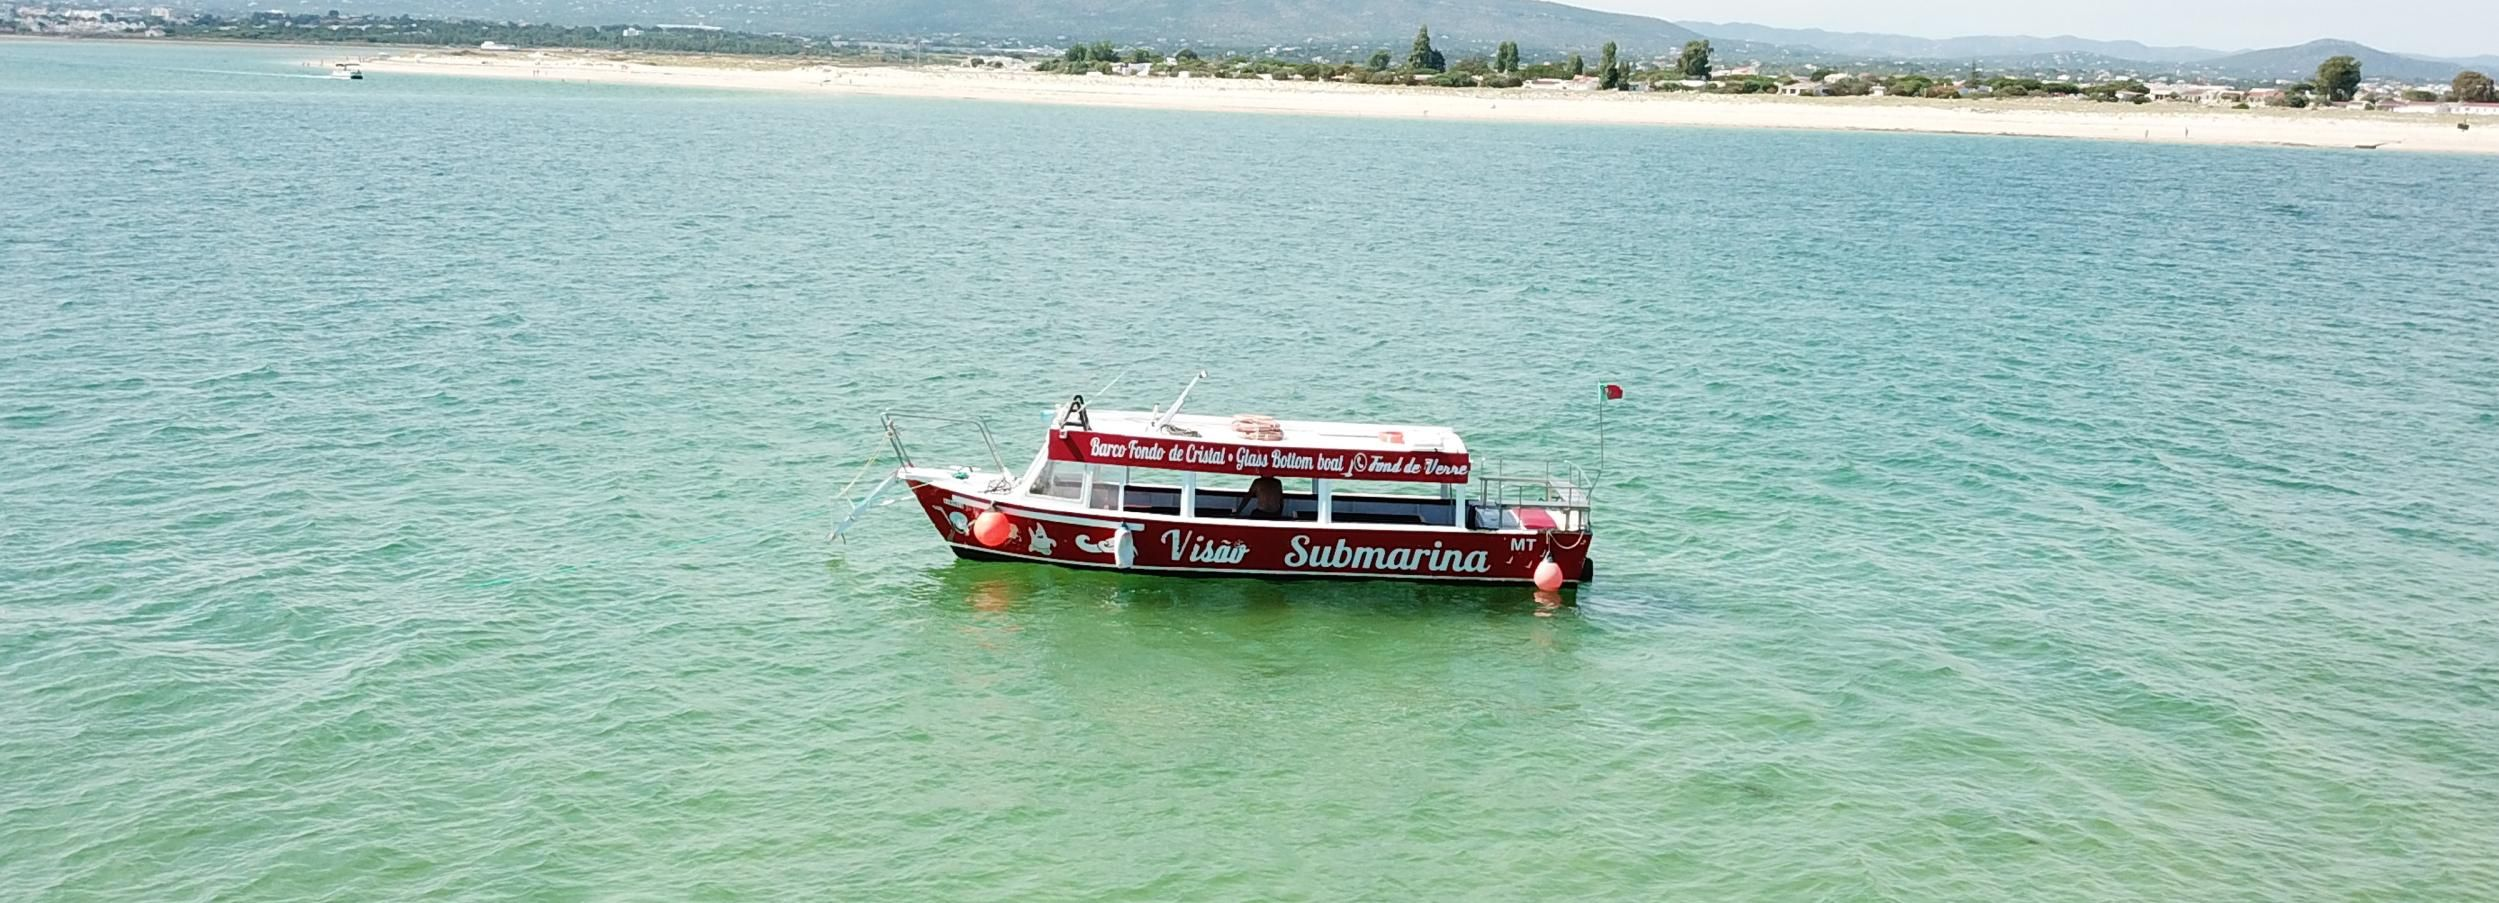 Ria Formosa: Islands Cruise with Lunch at Fisherman's Island